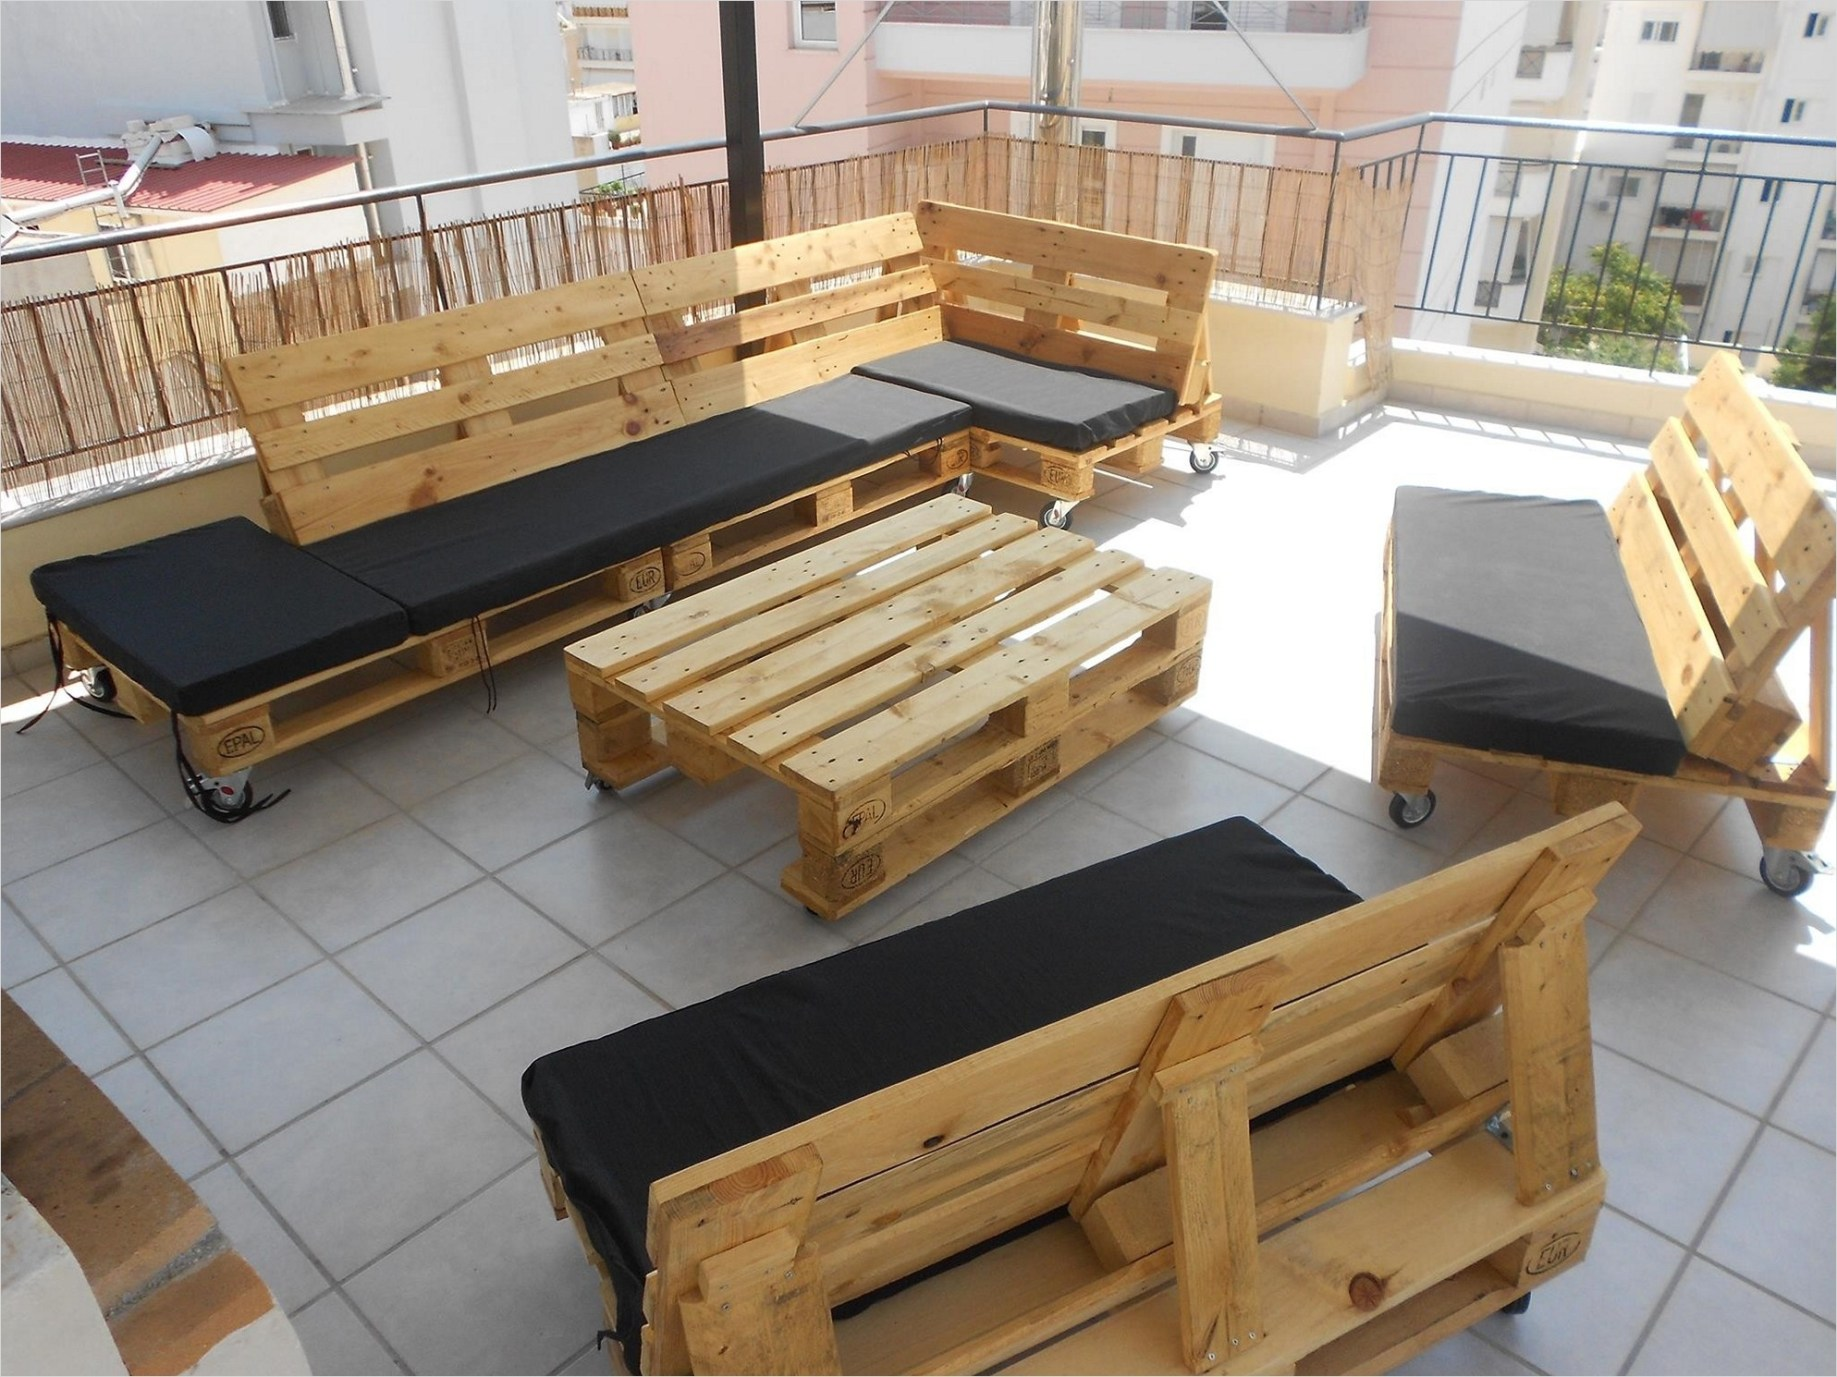 40 Diy Ideas Outdoor Furniture Made From Pallets 35 Diy Pallet Couch Tips and Tricks to Make It More fortable 4